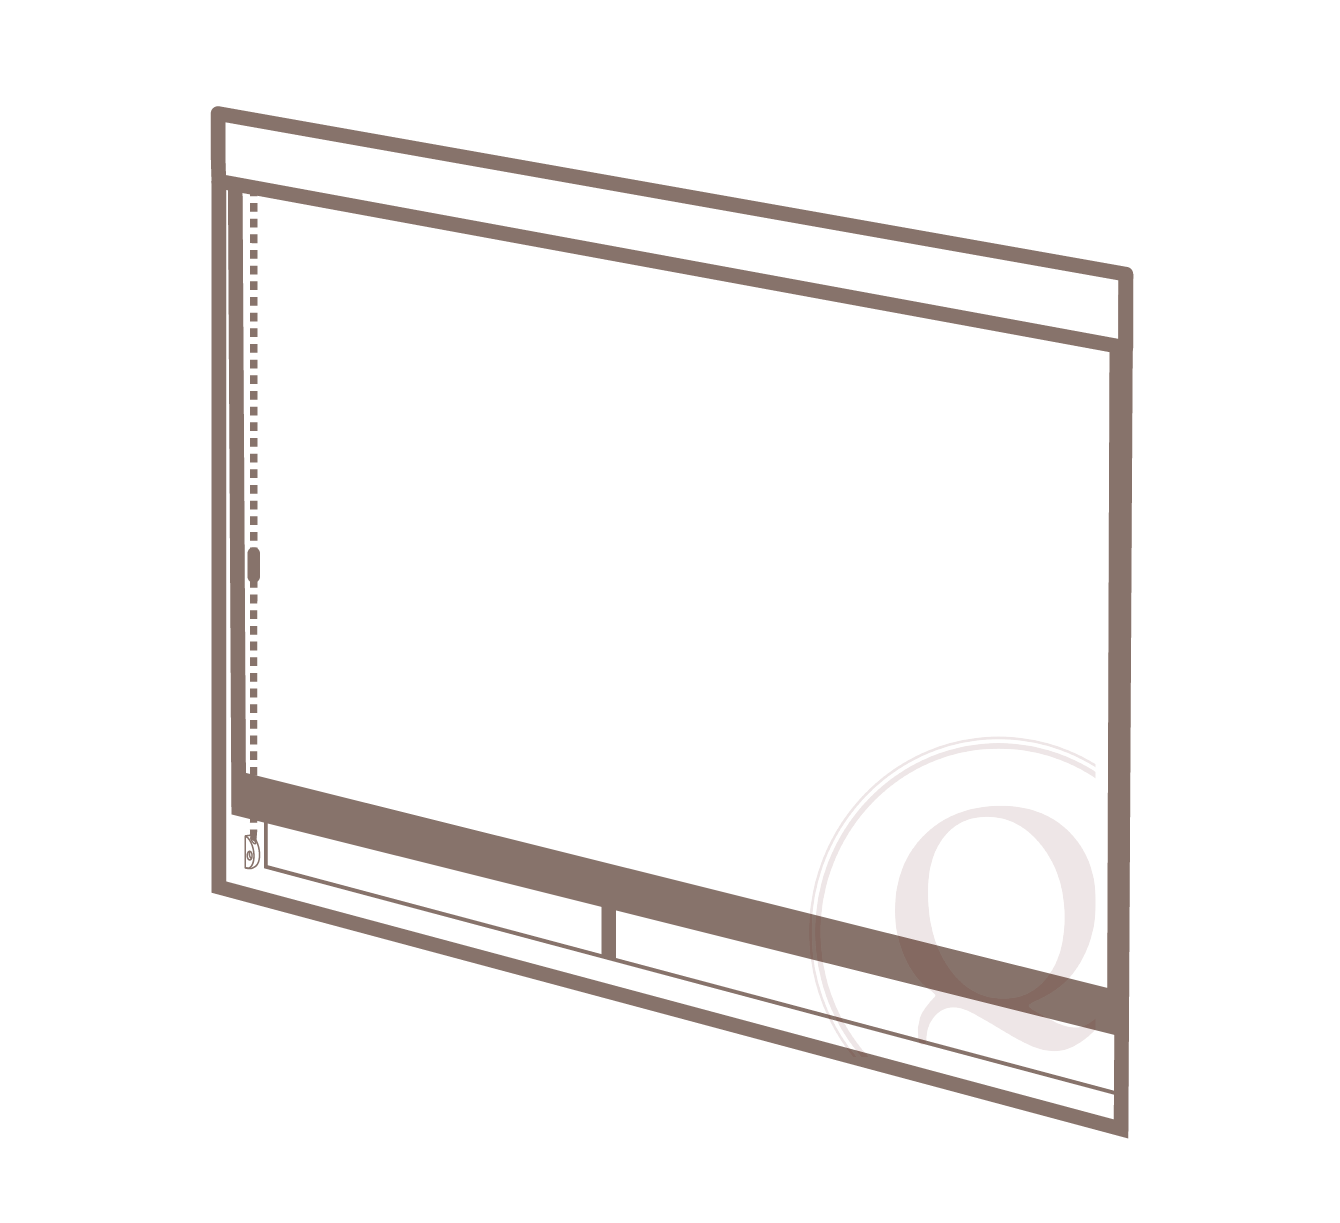 inside mount - 1. Sheetrock: tape and bed preferred2. Windows: frames and glass installed with jambs in final conditions3. Surrounding finishes that impact treatment dimensions (i.e. molding, cranks, etc.)